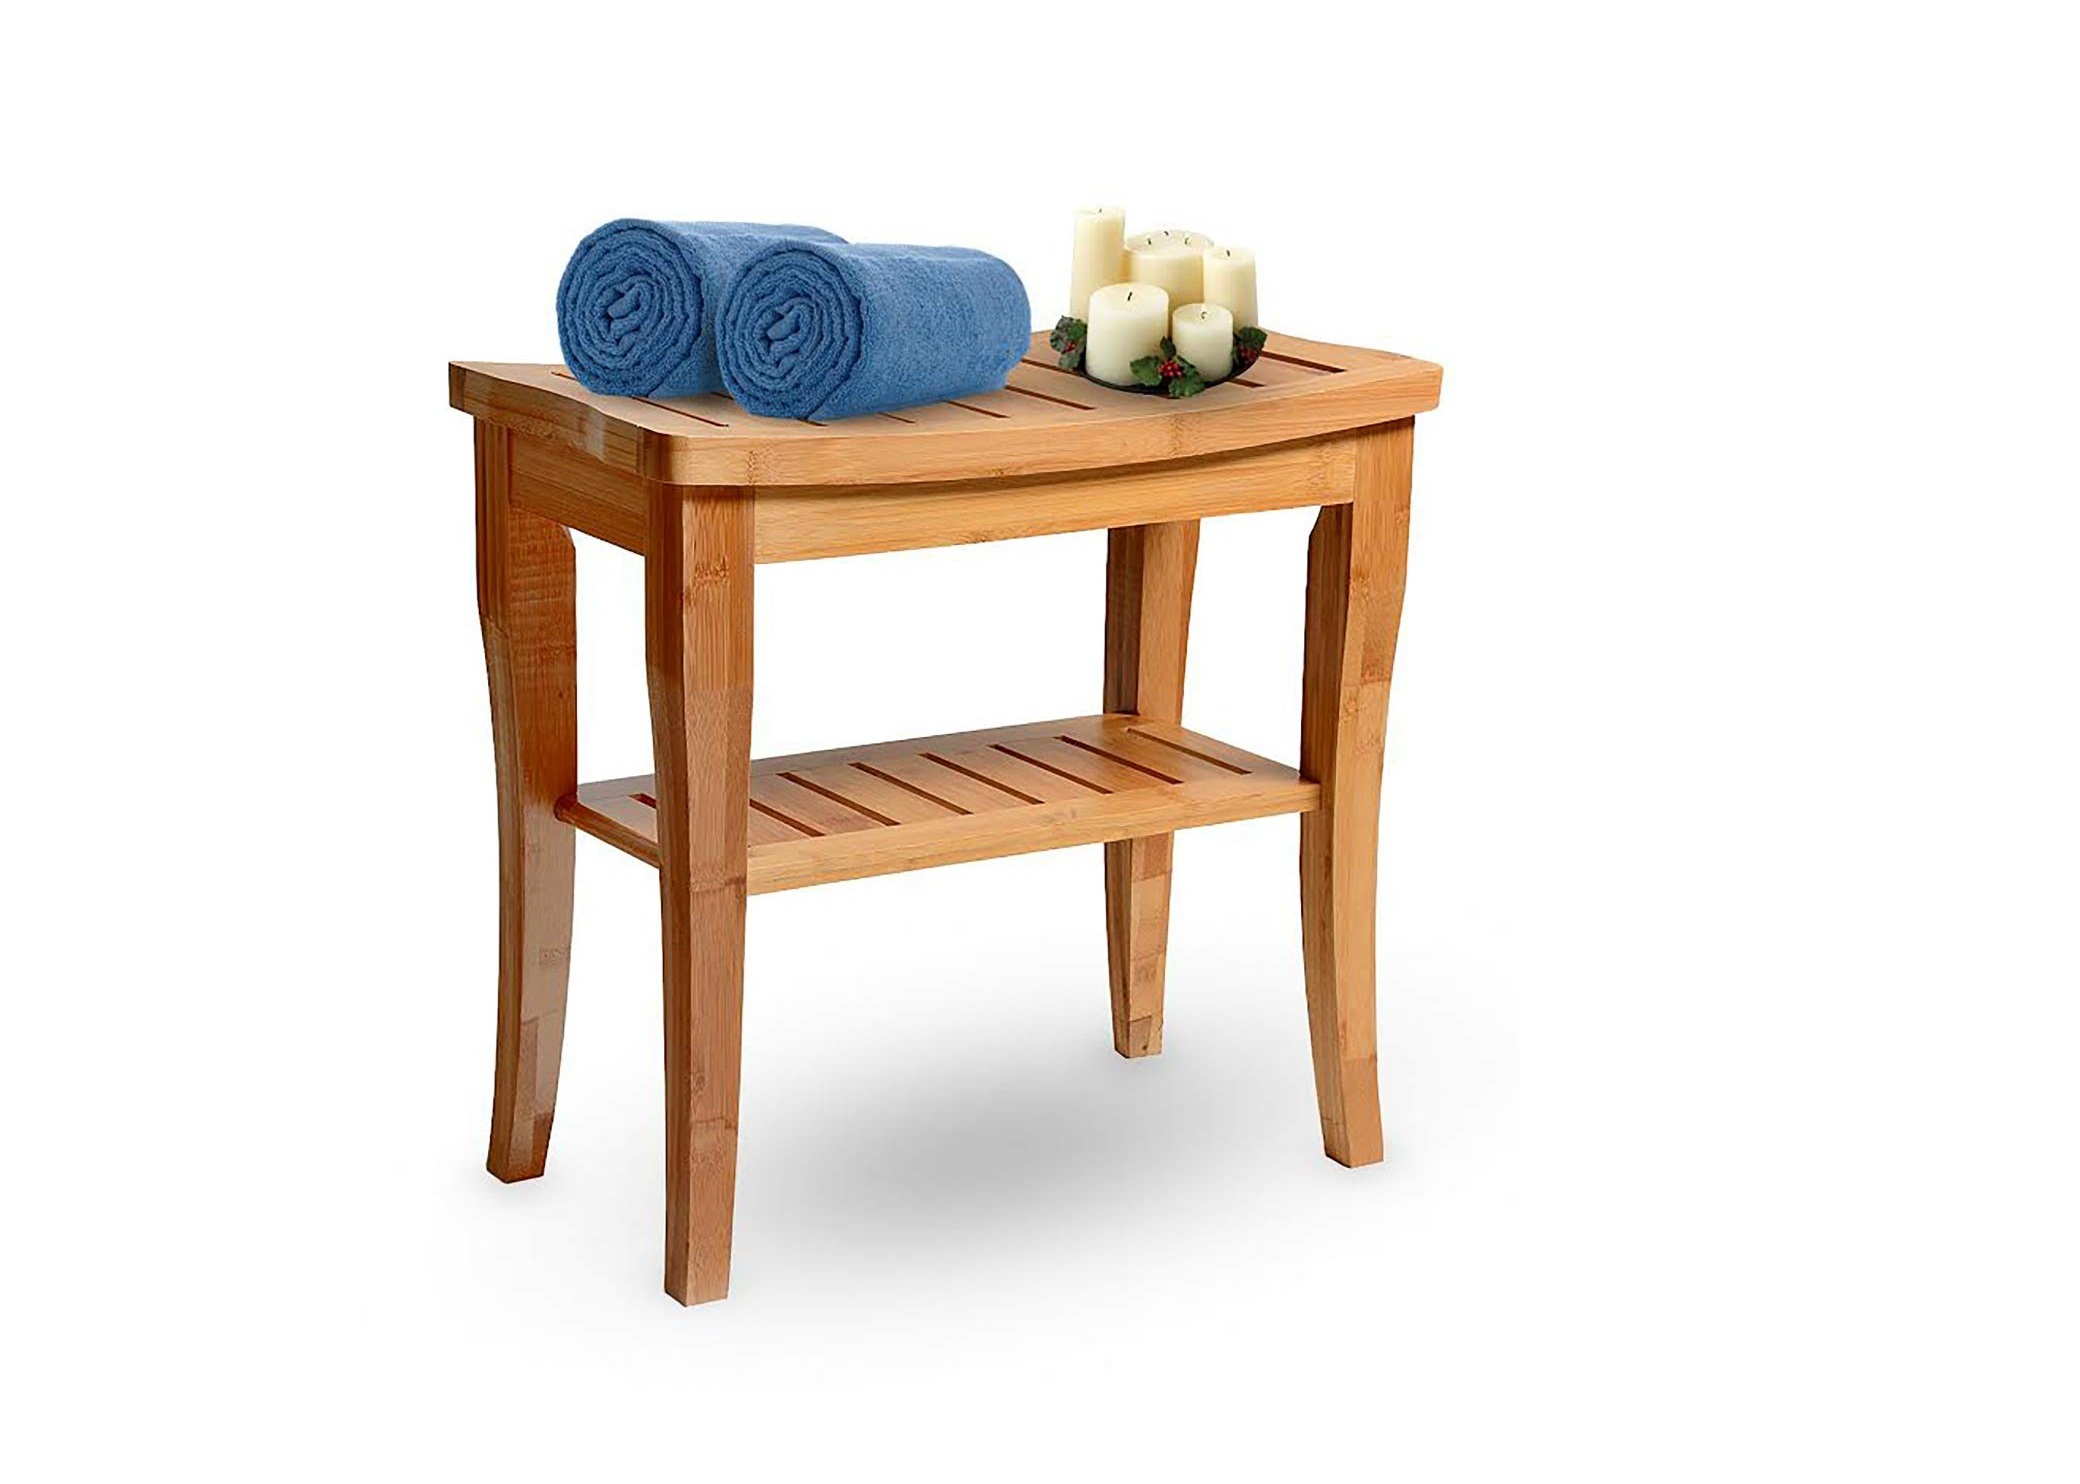 Top 6 Best Teak Shower Benches in 2020 Reviews